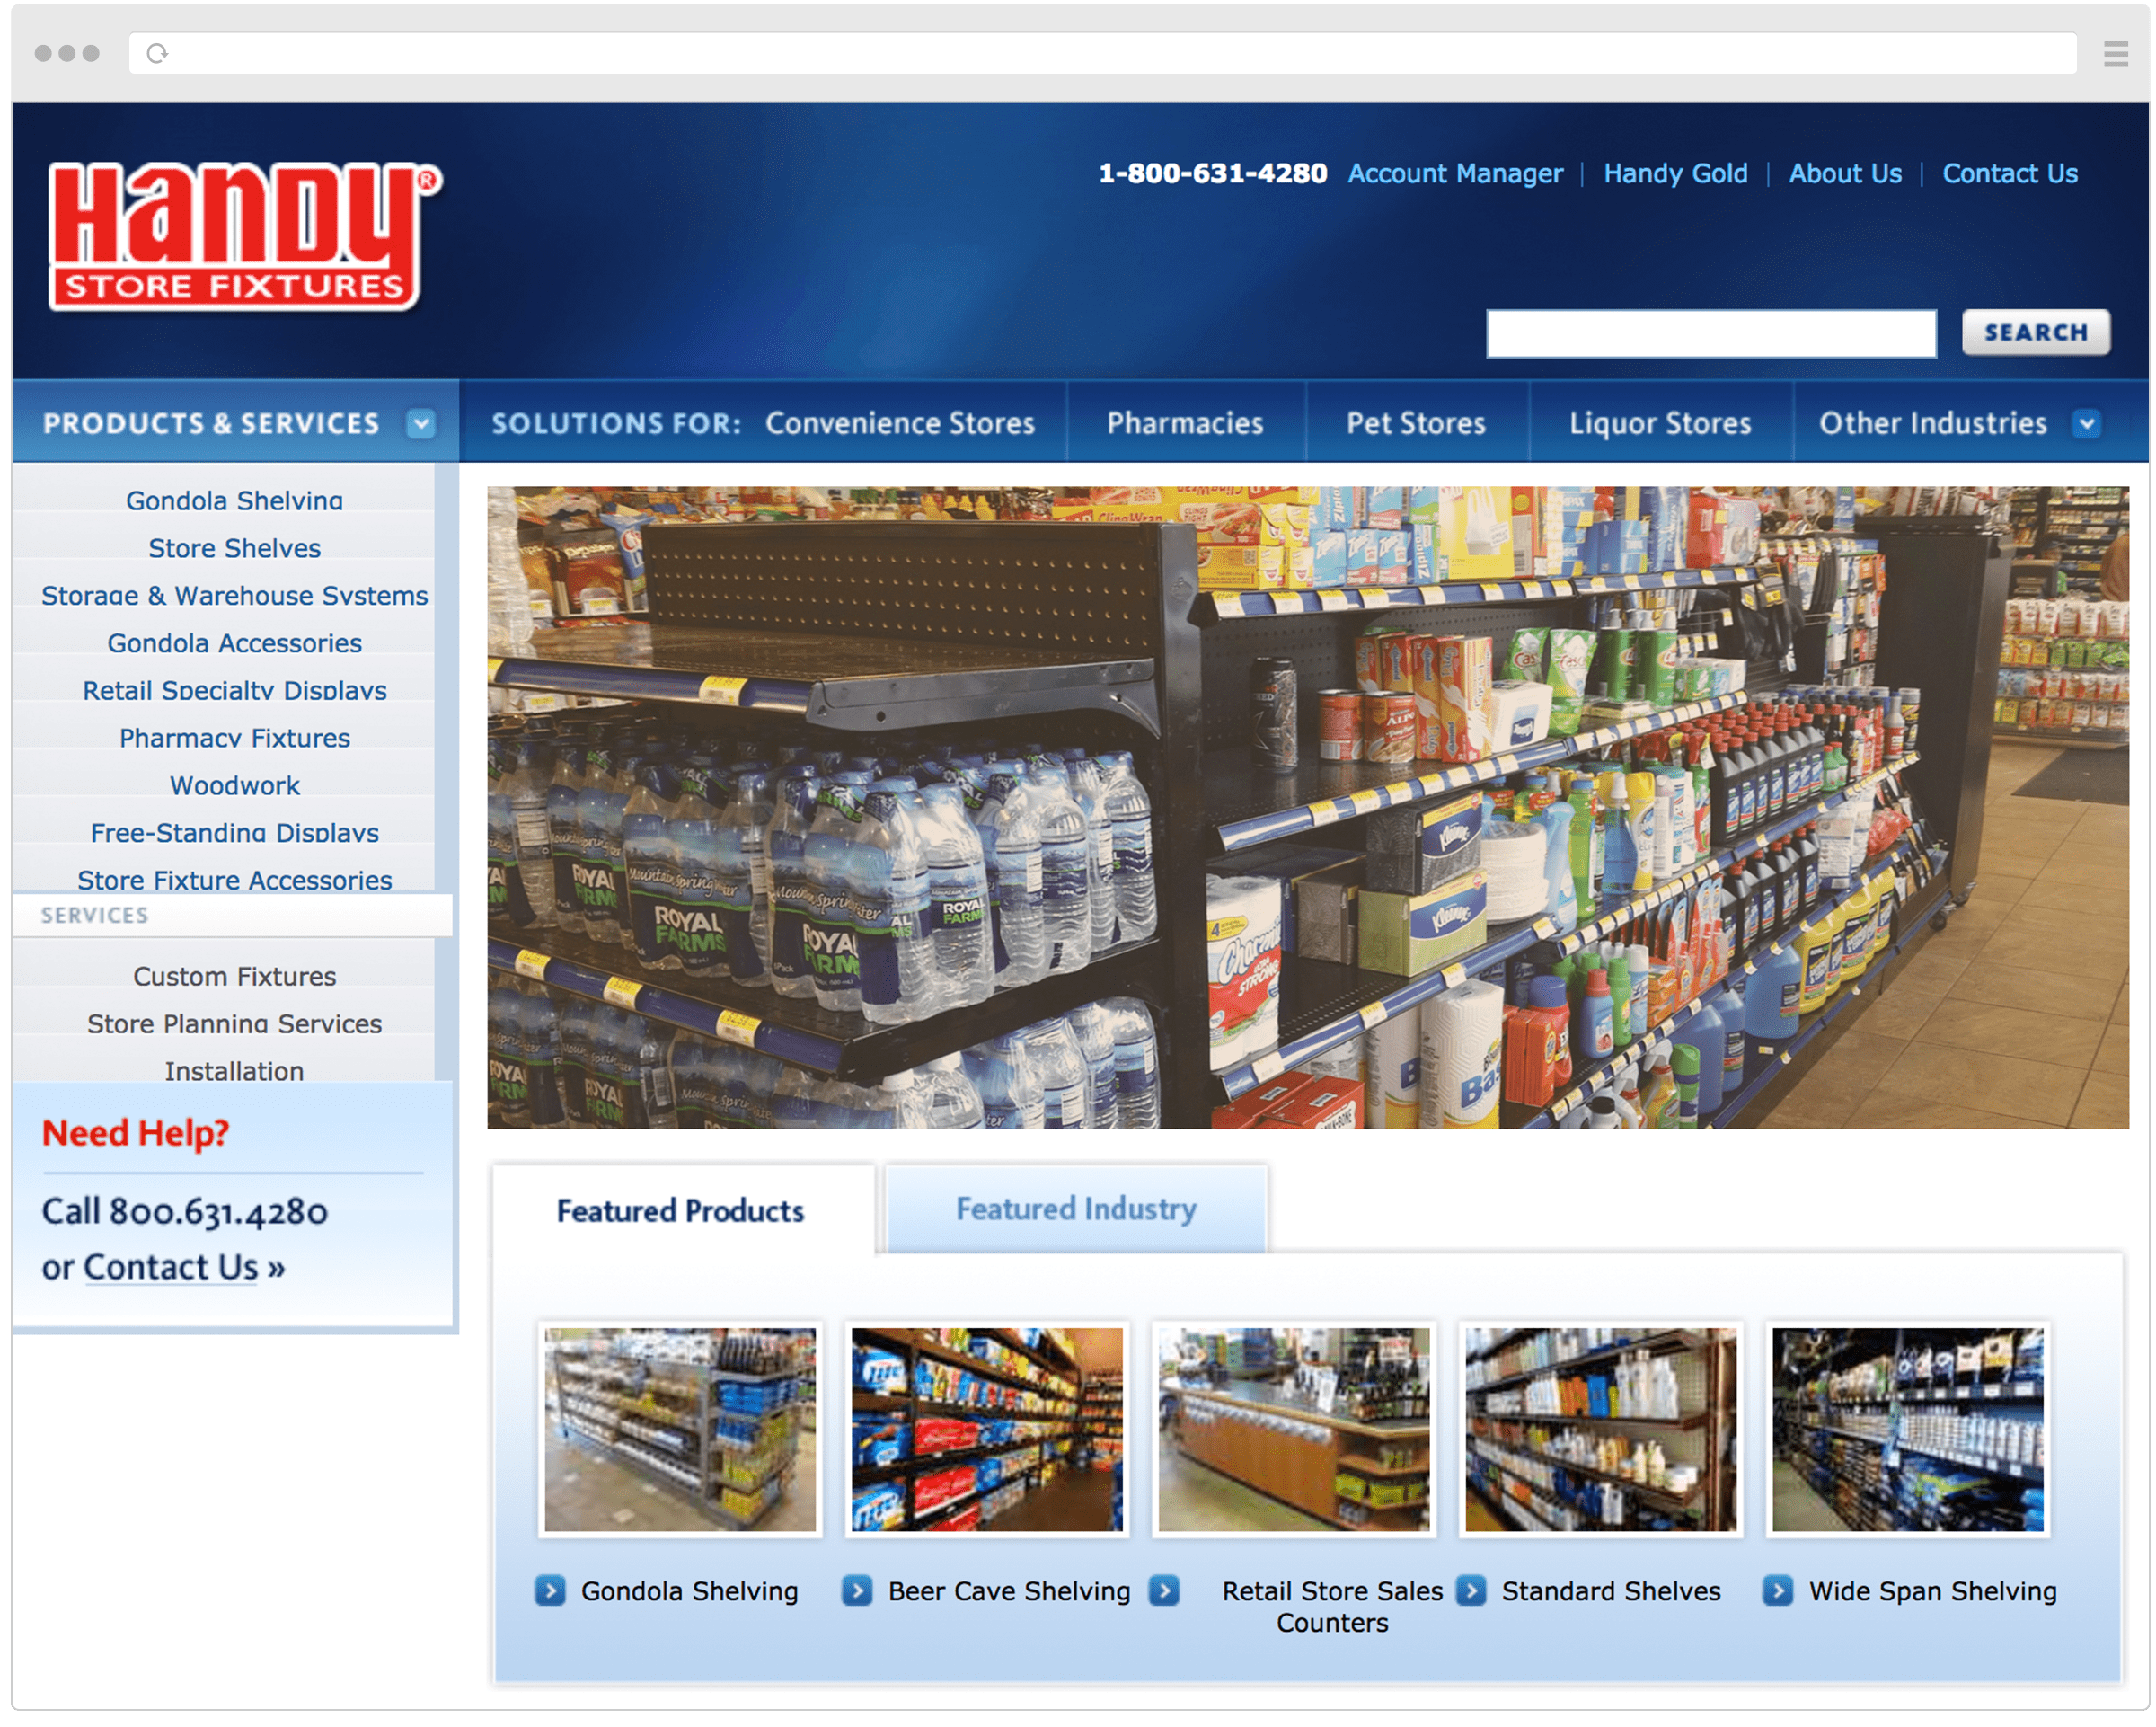 Old Handy Store Fixtures Homepage